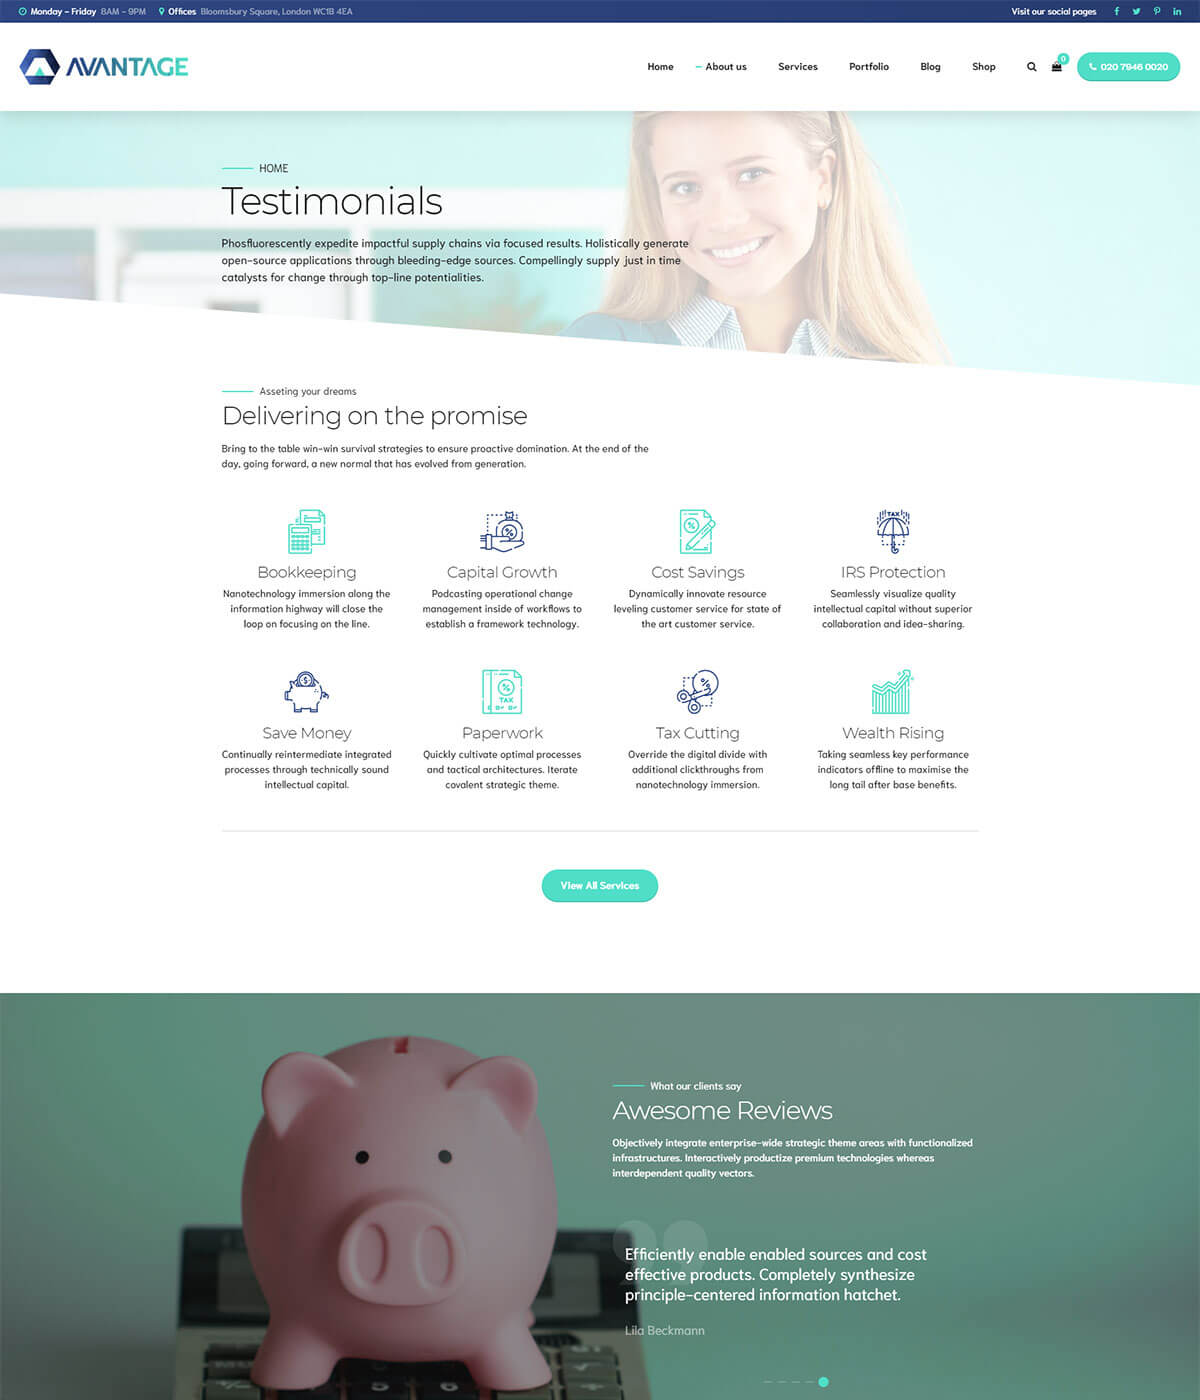 http://avantage.bold-themes.com/wp-content/uploads/2019/05/accountant-04-testimonials.jpg